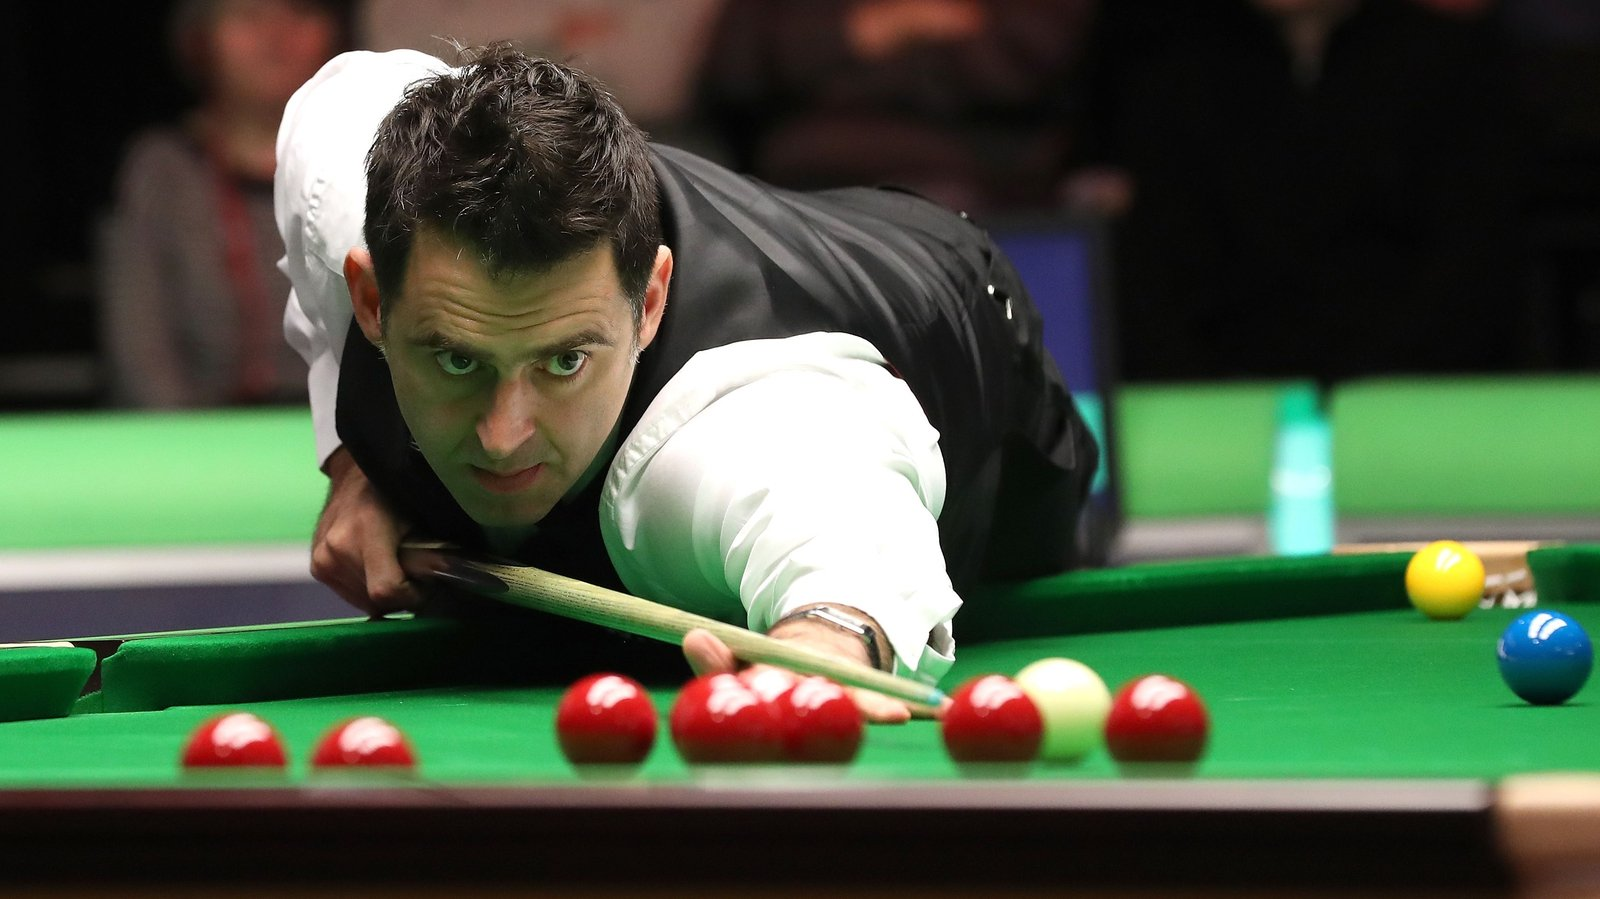 Stay away from snooker as a career, warns Rocket